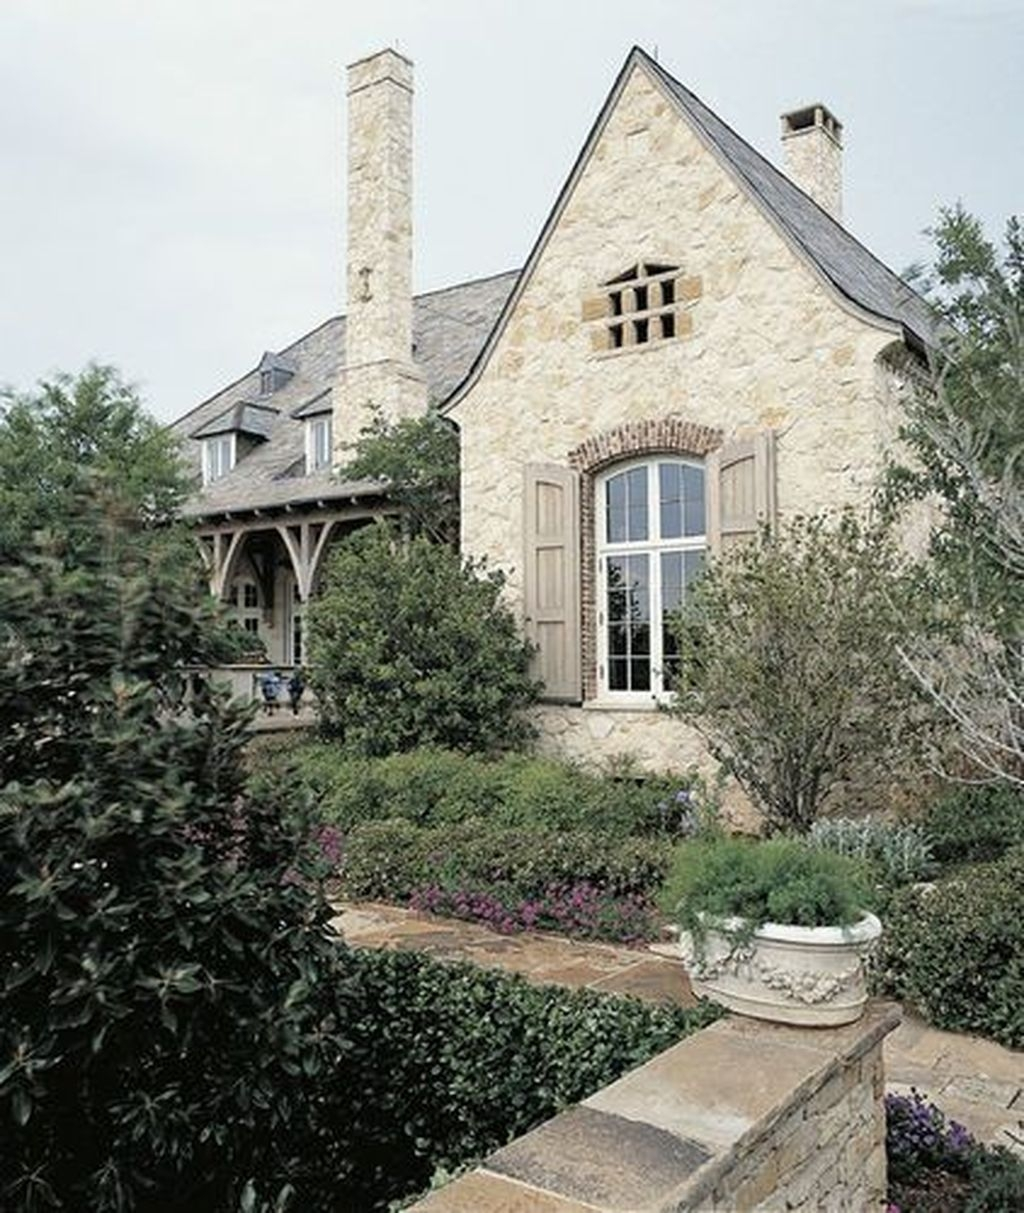 Stylish French Country Exterior For Your Home Design Inspiration 34